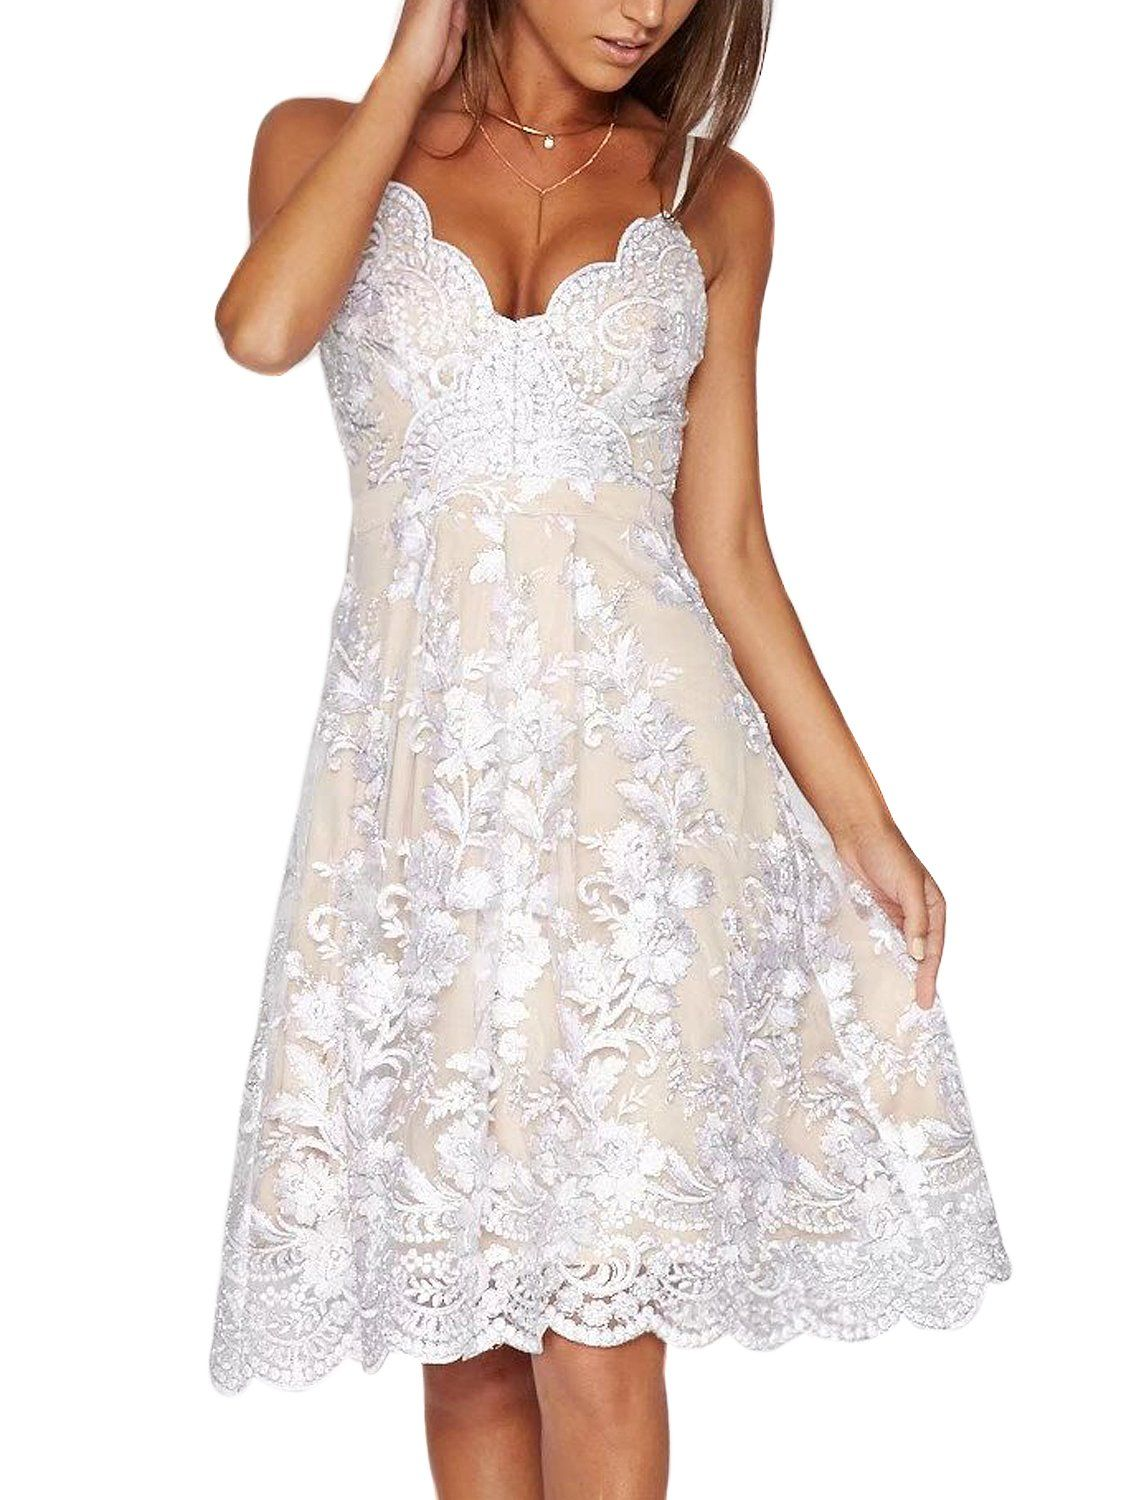 Our goal is to provide high quality dress at affordable price for all  brides 91455232c7c4